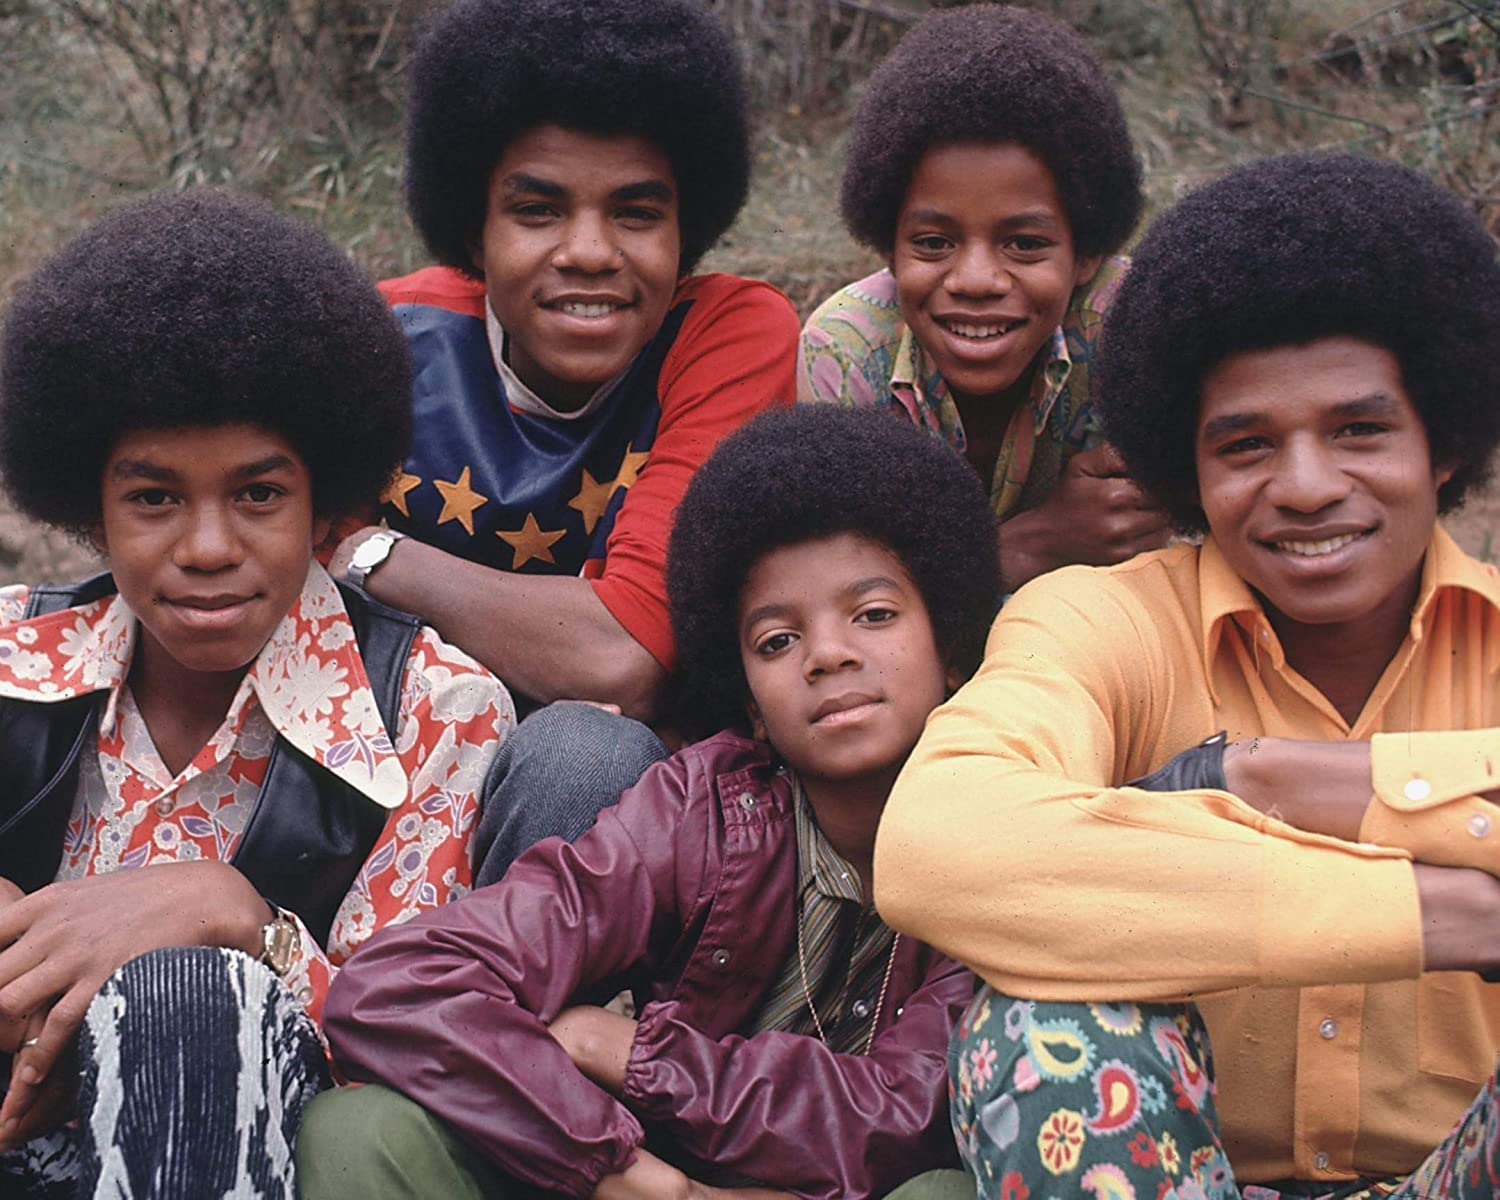 The Jackson 5 8x10 Photo Picture Image #2 *SHIPS FROM USA* Michael 8 x 10